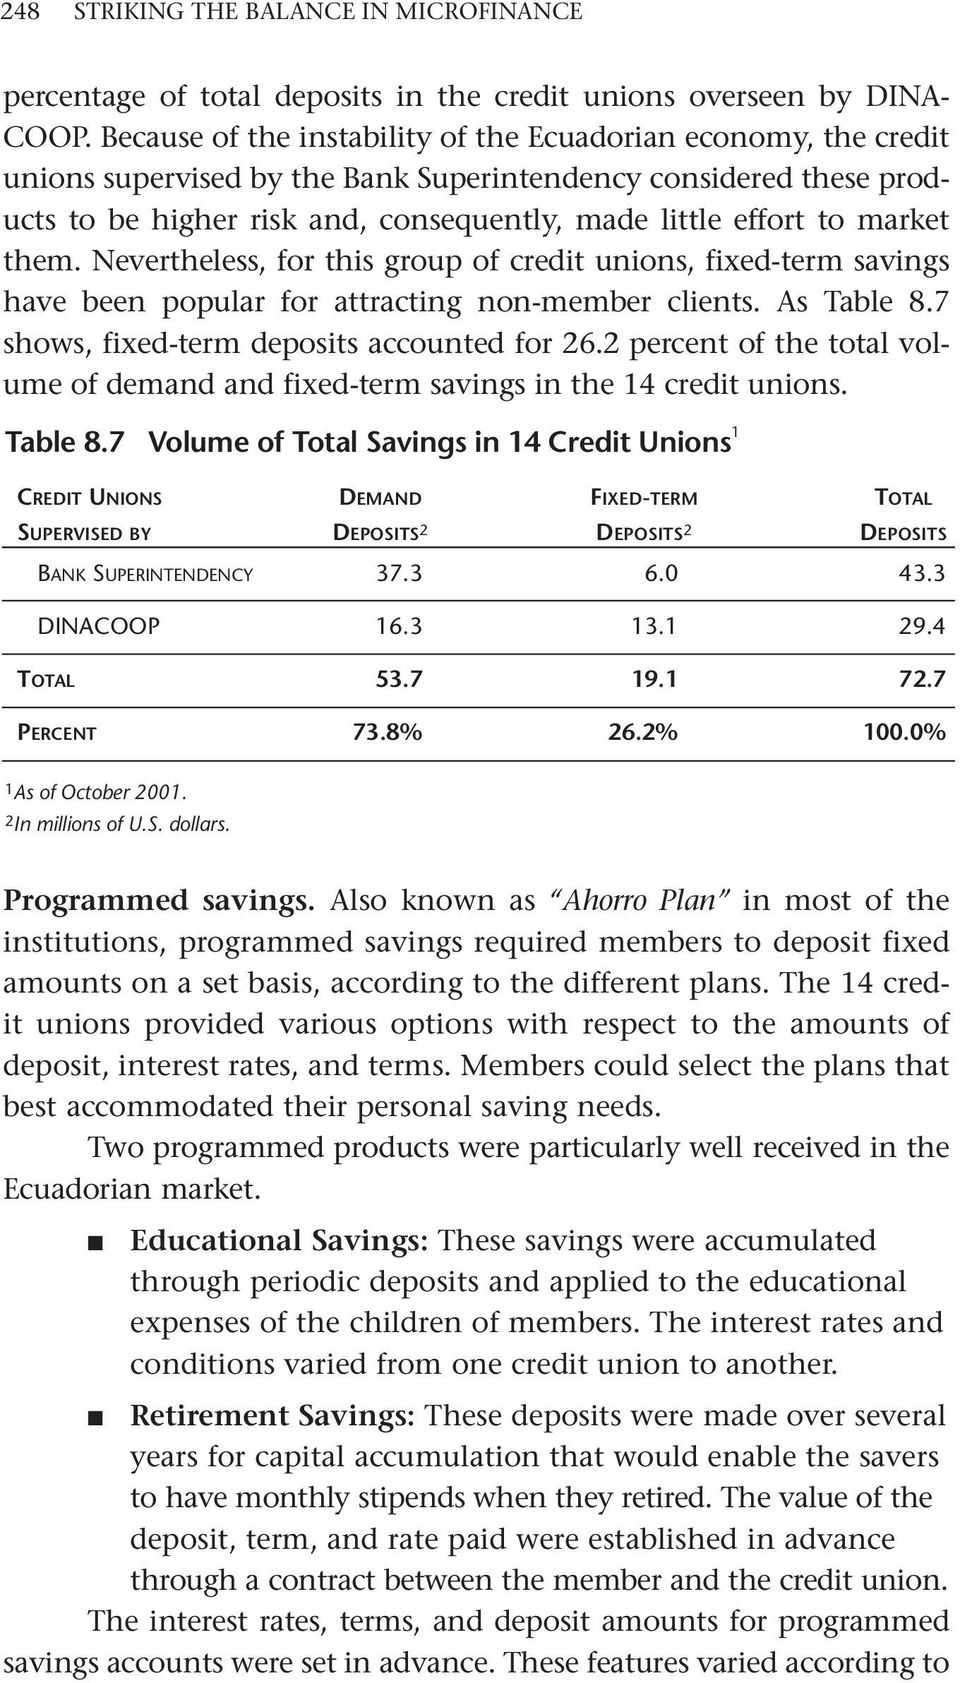 market them. Nevertheless, for this group of credit unions, fixed-term savings have been popular for attracting non-member clients. As Table 8.7 shows, fixed-term deposits accounted for 26.